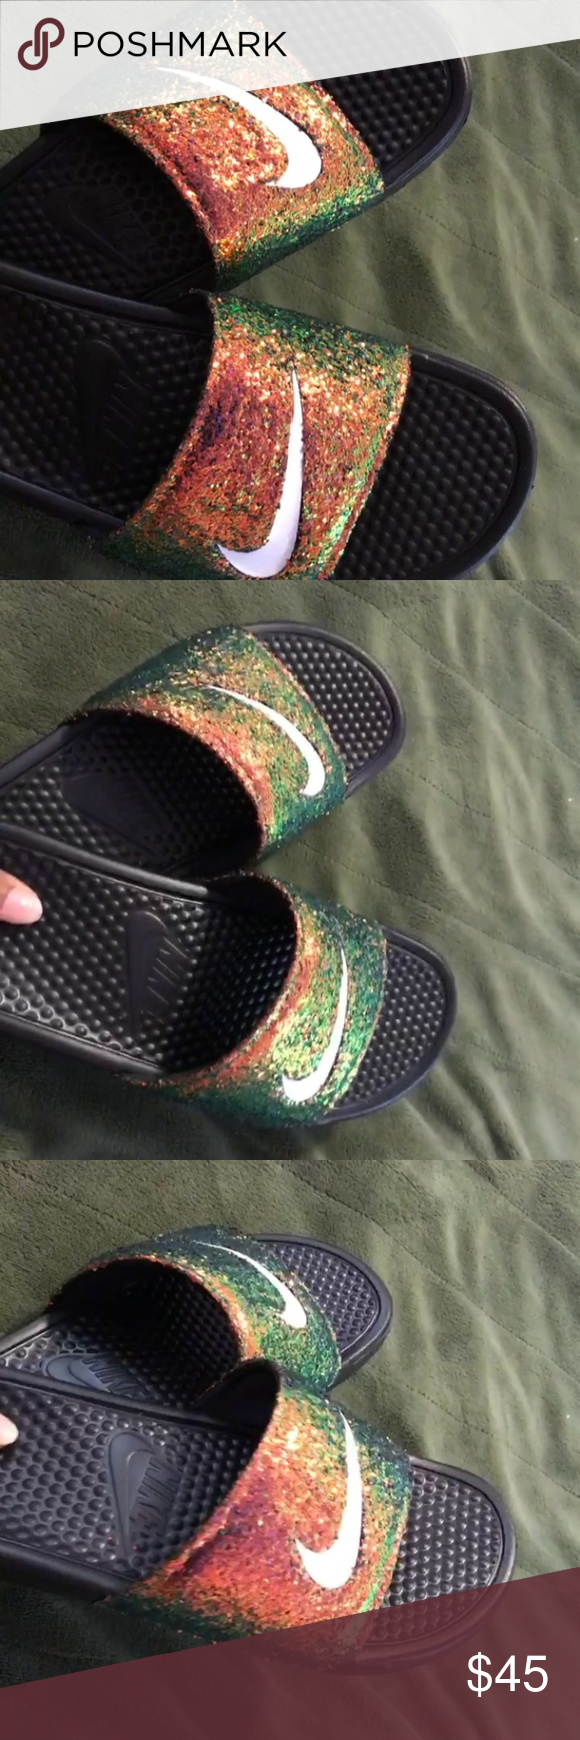 c10431e23cfc Chameleon Nike slides Gorgeous custom orange to green chameleon color  changing Nike slides Nike Shoes Sandals